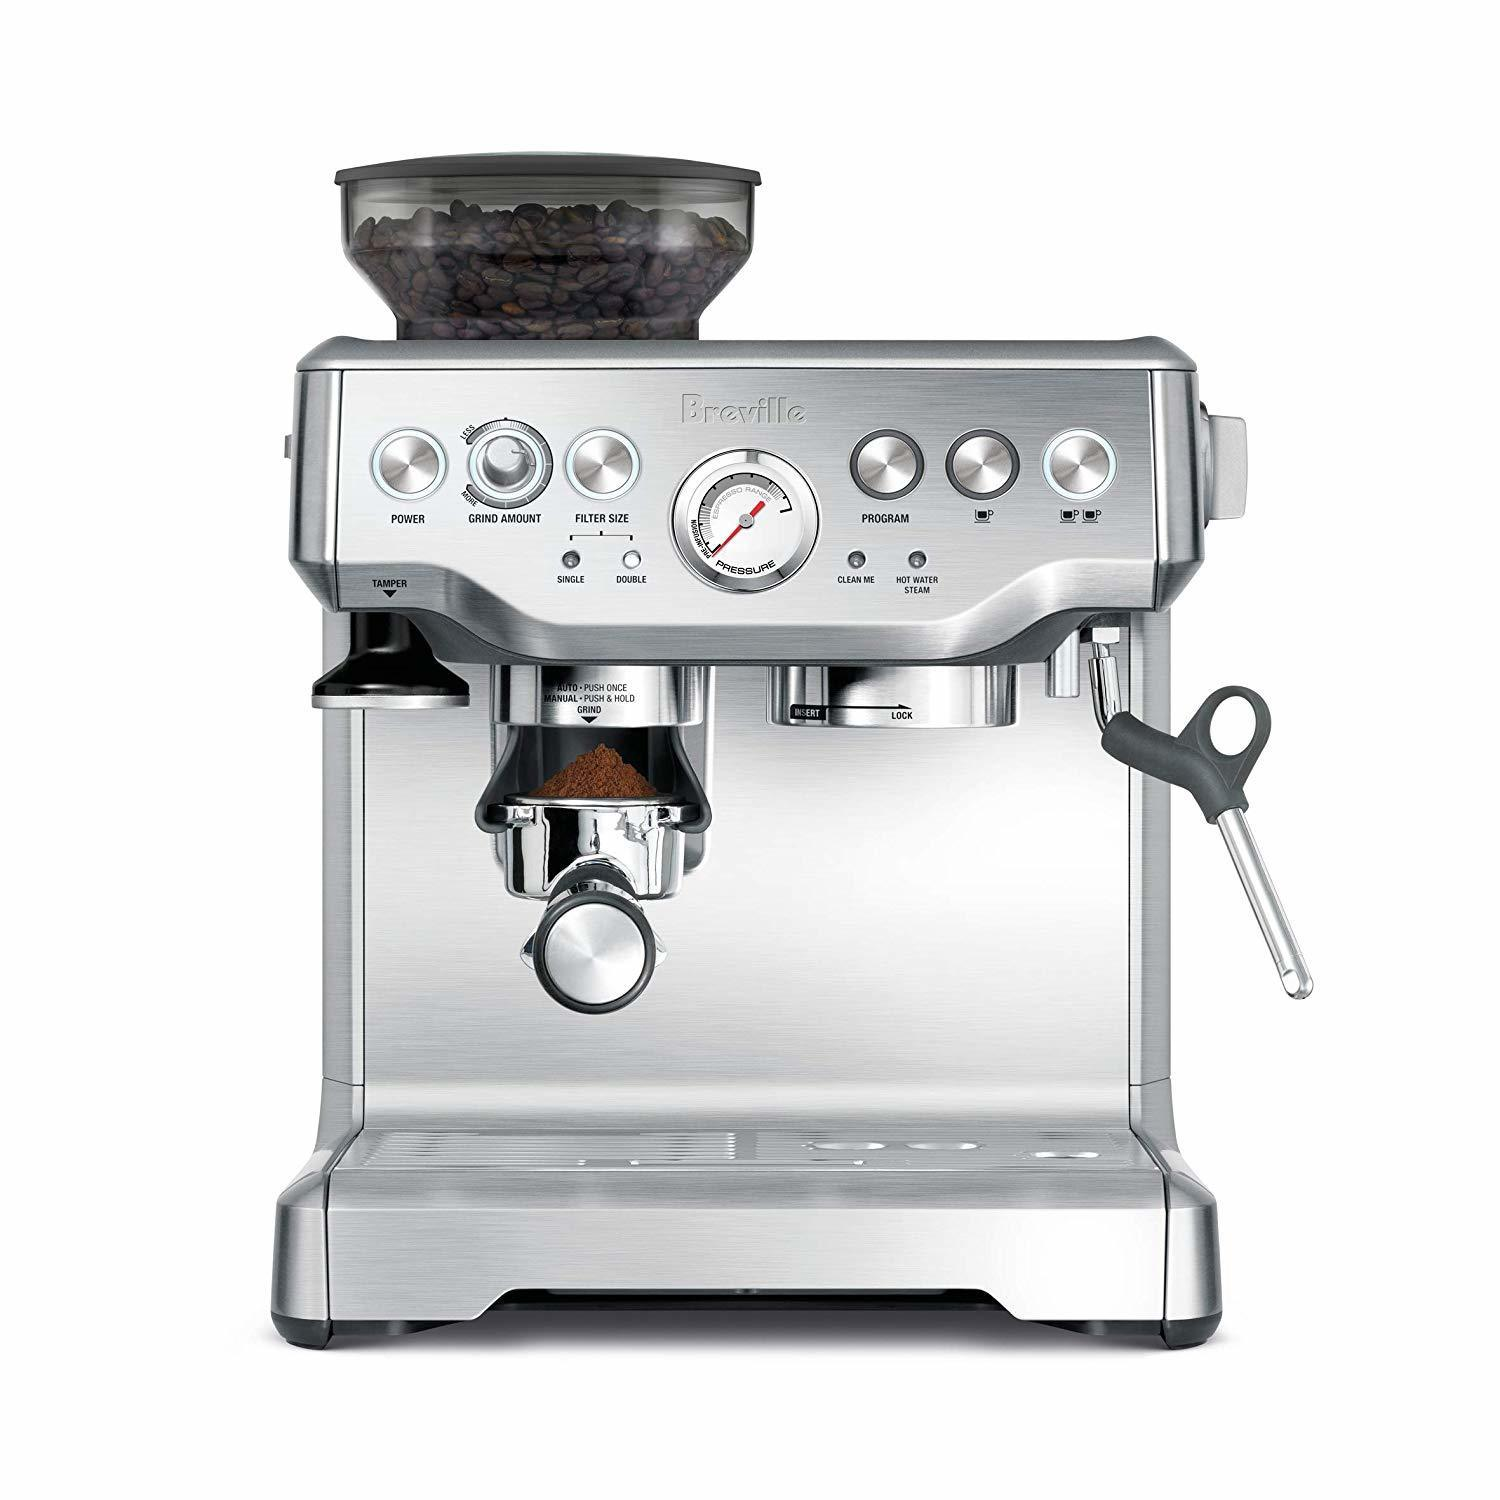 Breville Barista Express from Amazon US and Australia